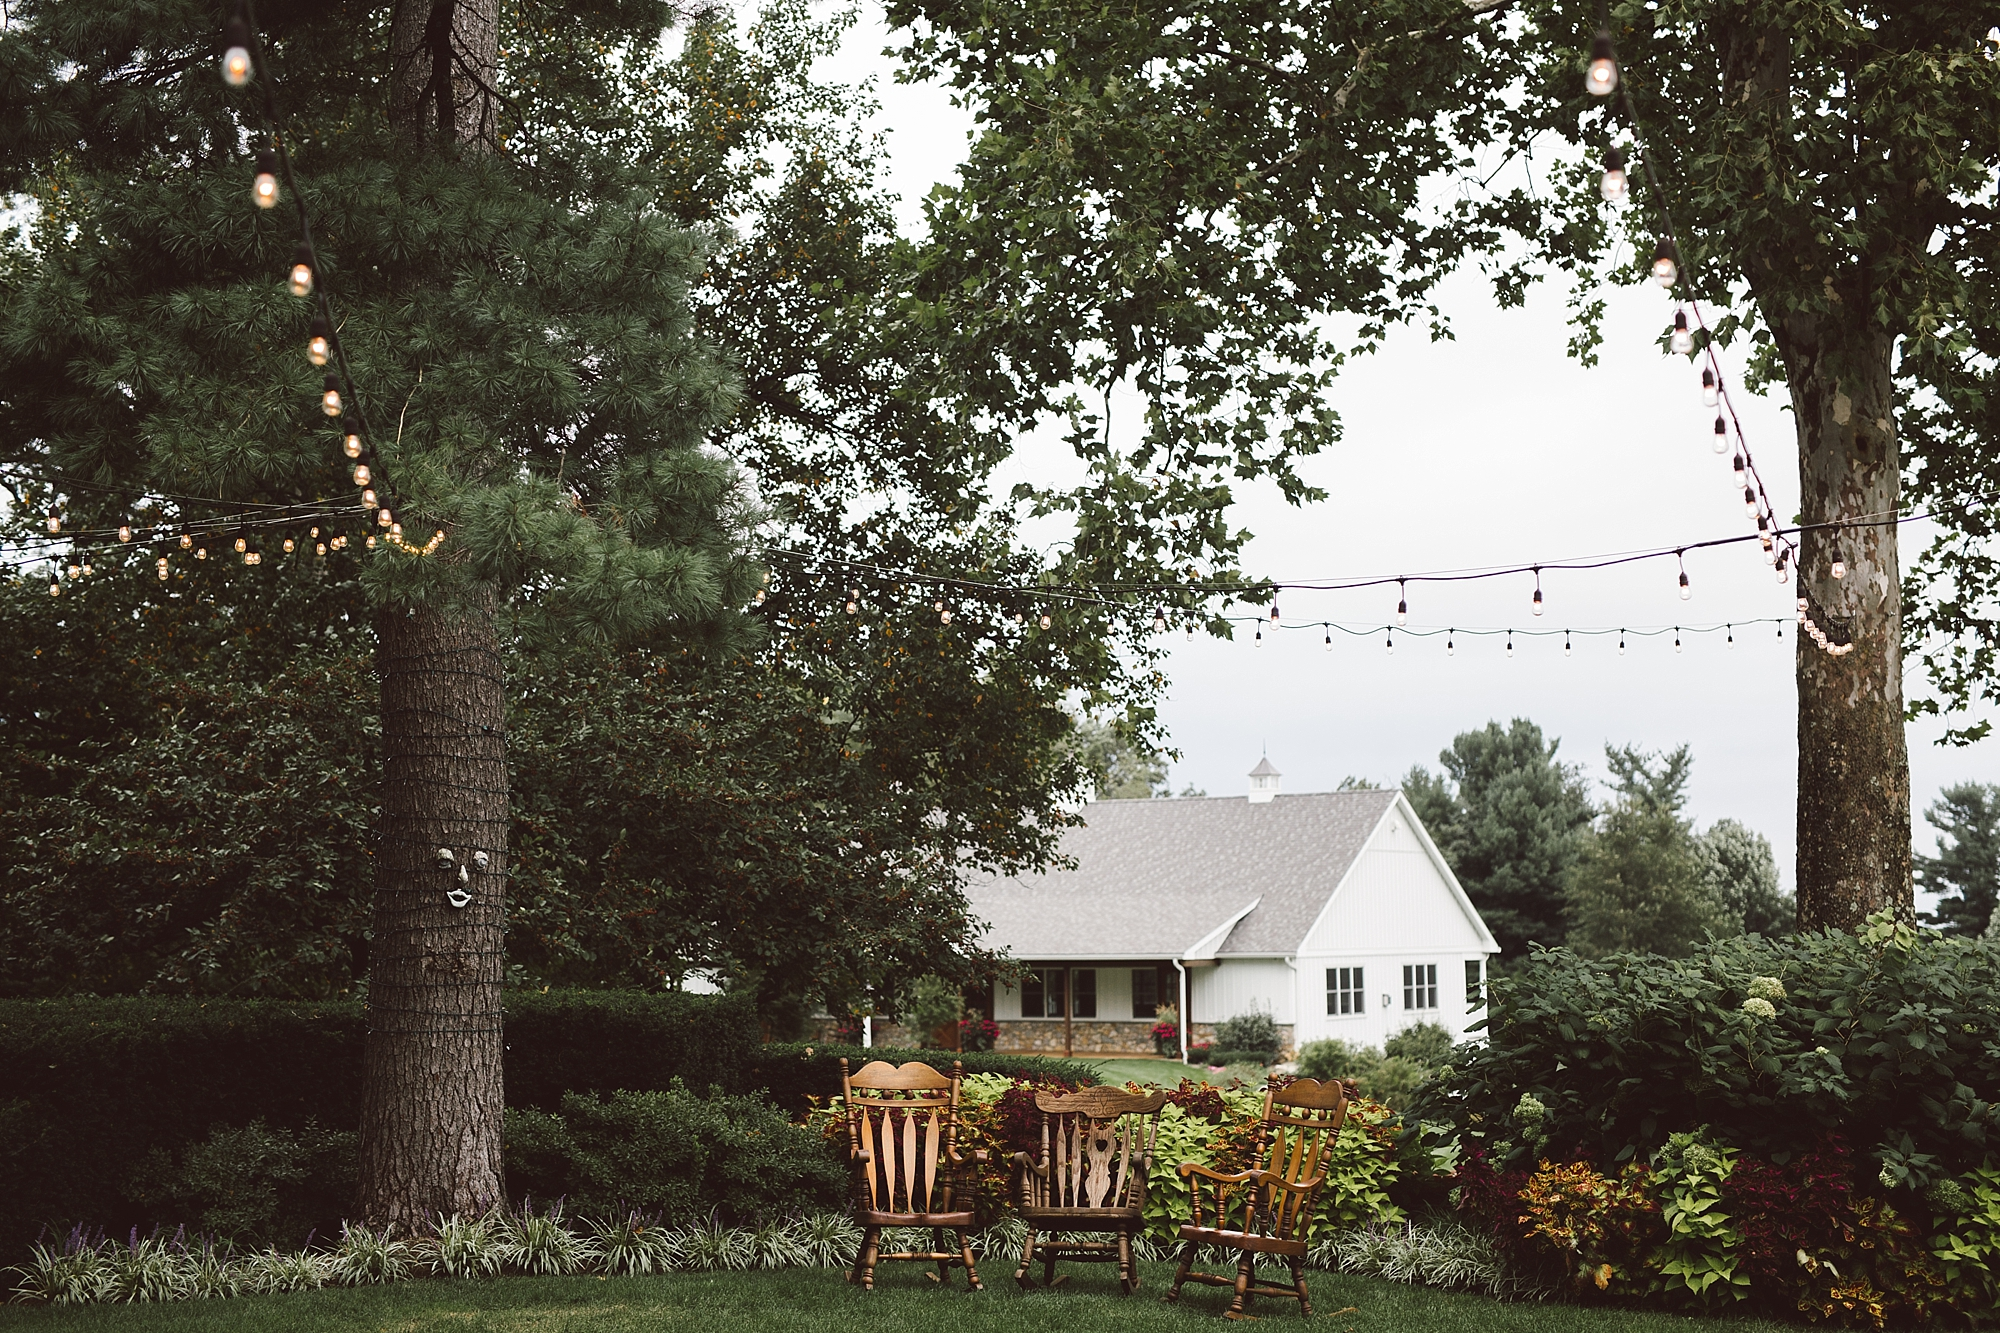 Druemore_Joe_Mac_Creative_Philadelphila_Wedding_Photography_drumore_estate_pequea_Best_lancaster_wedding_venues_0066.jpg